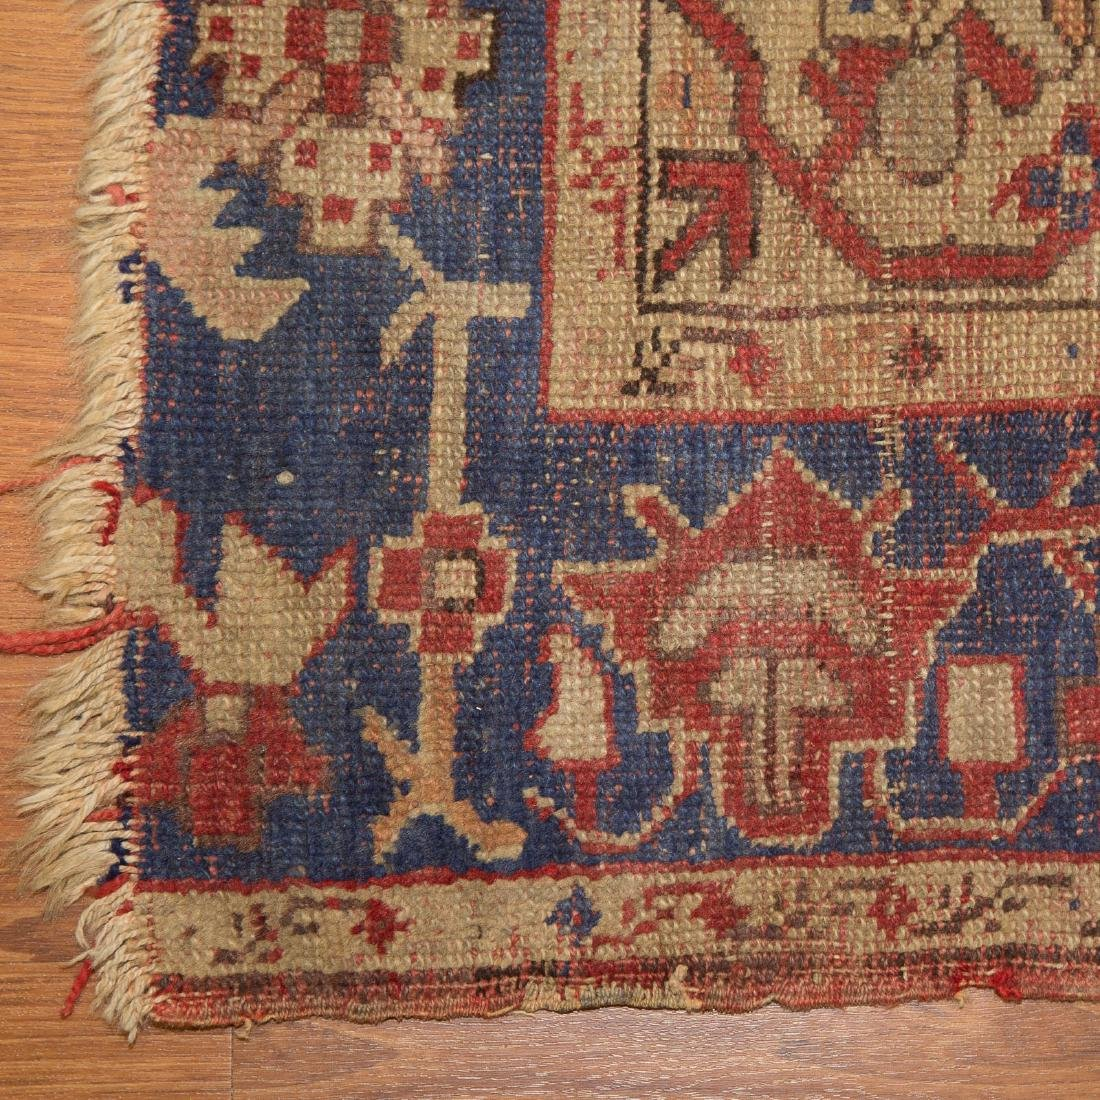 Antique Oushak rug, approx. 3.11 x 6.3 - 2